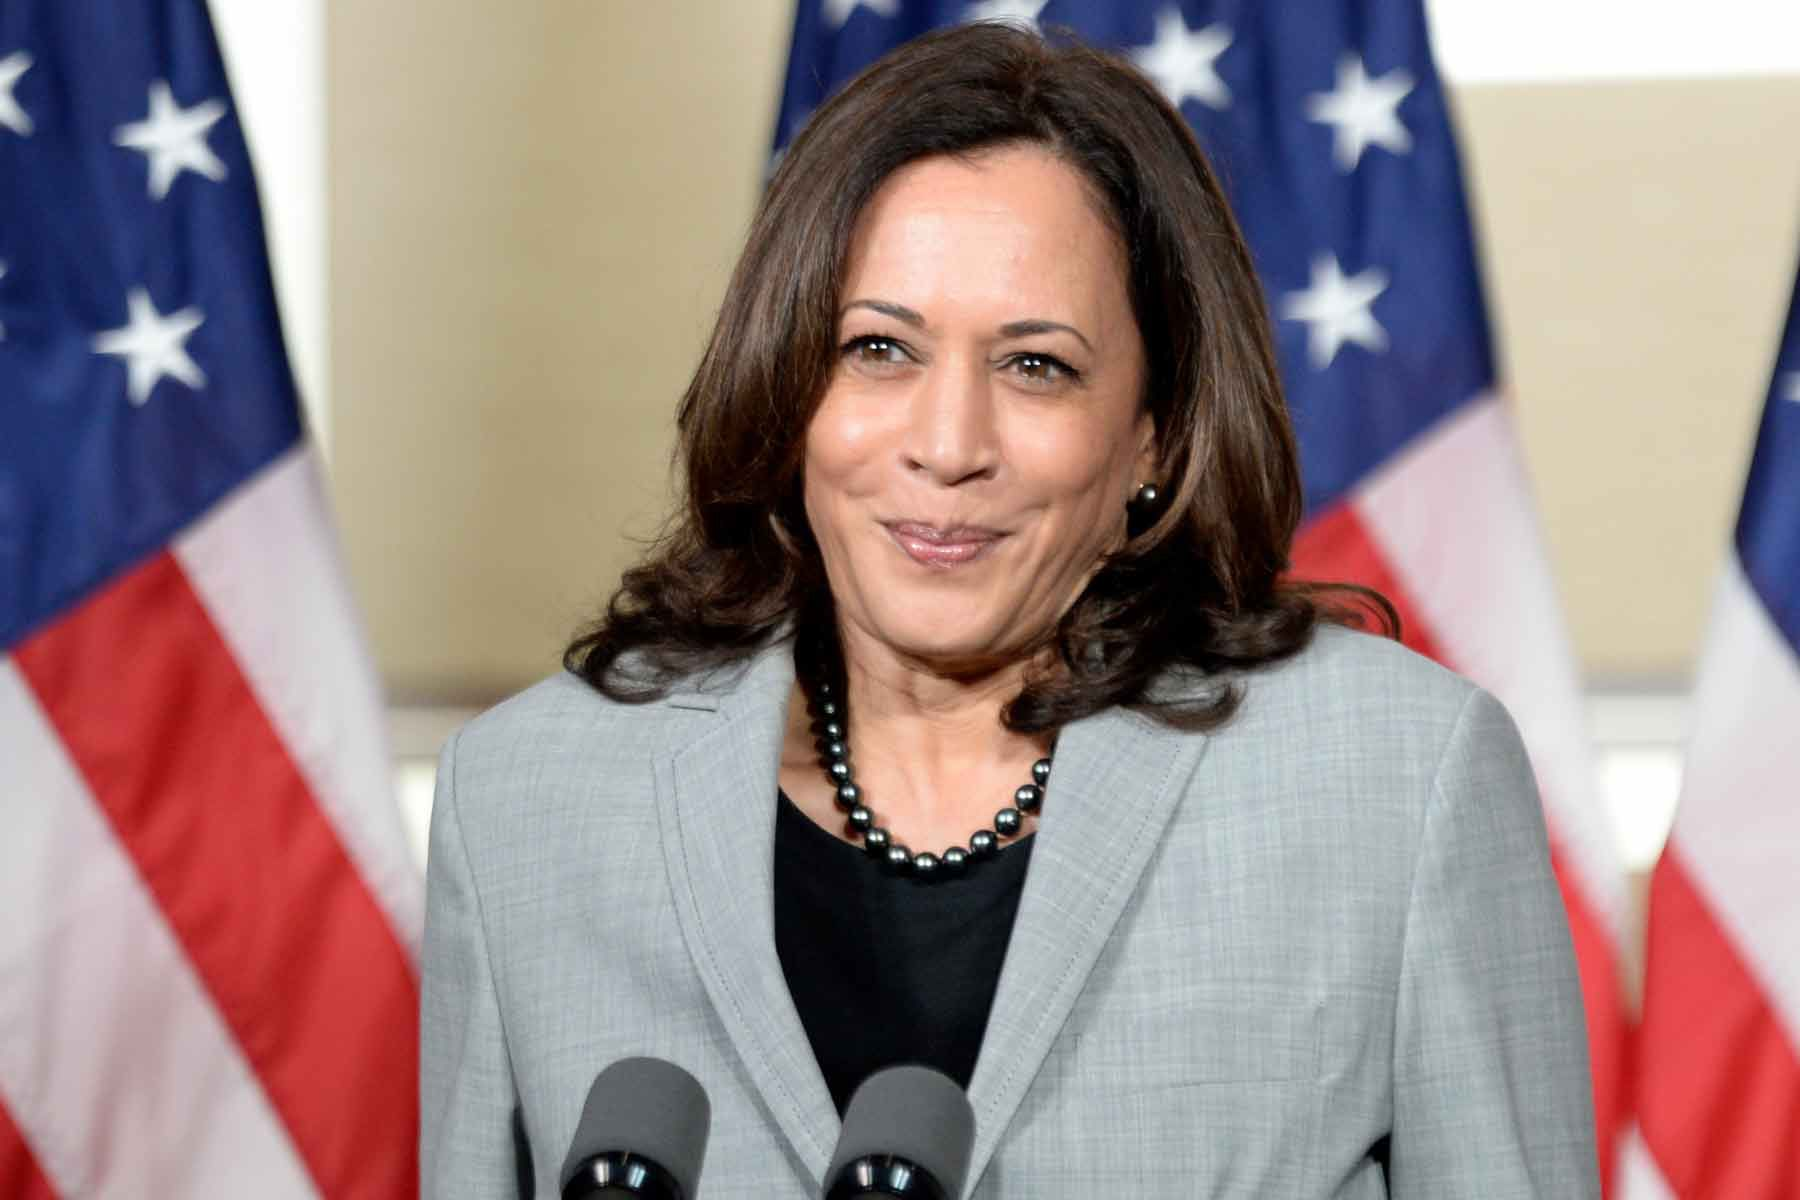 kamala harris smiles and stands at a microphone